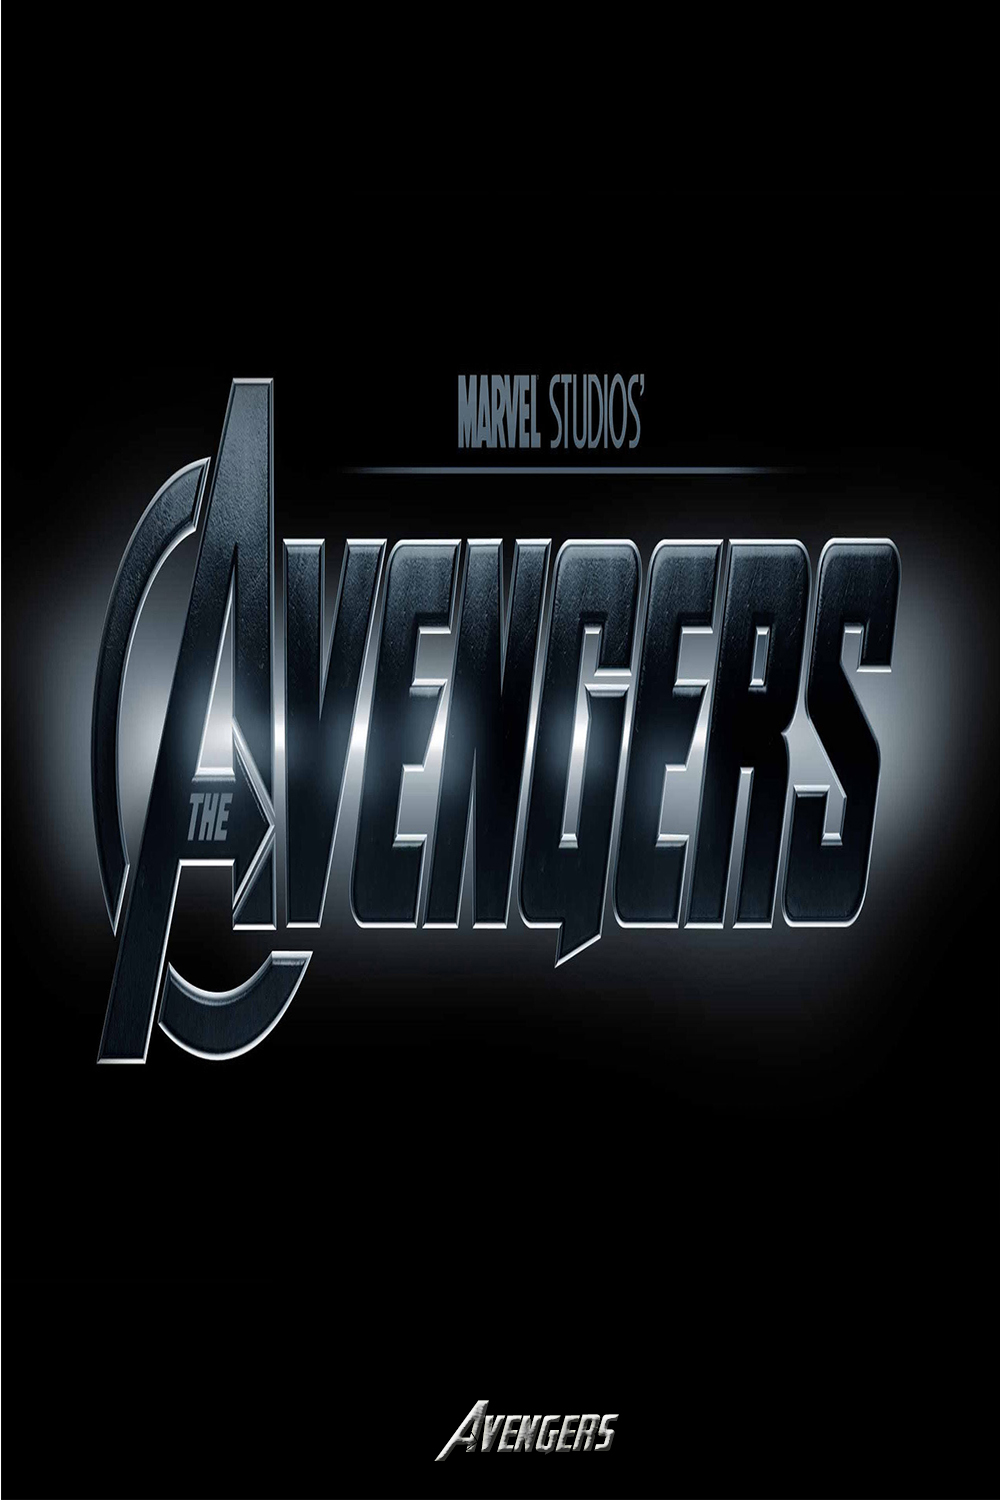 Avengers Wallpaper Iphone Free Download In 2020 Avengers